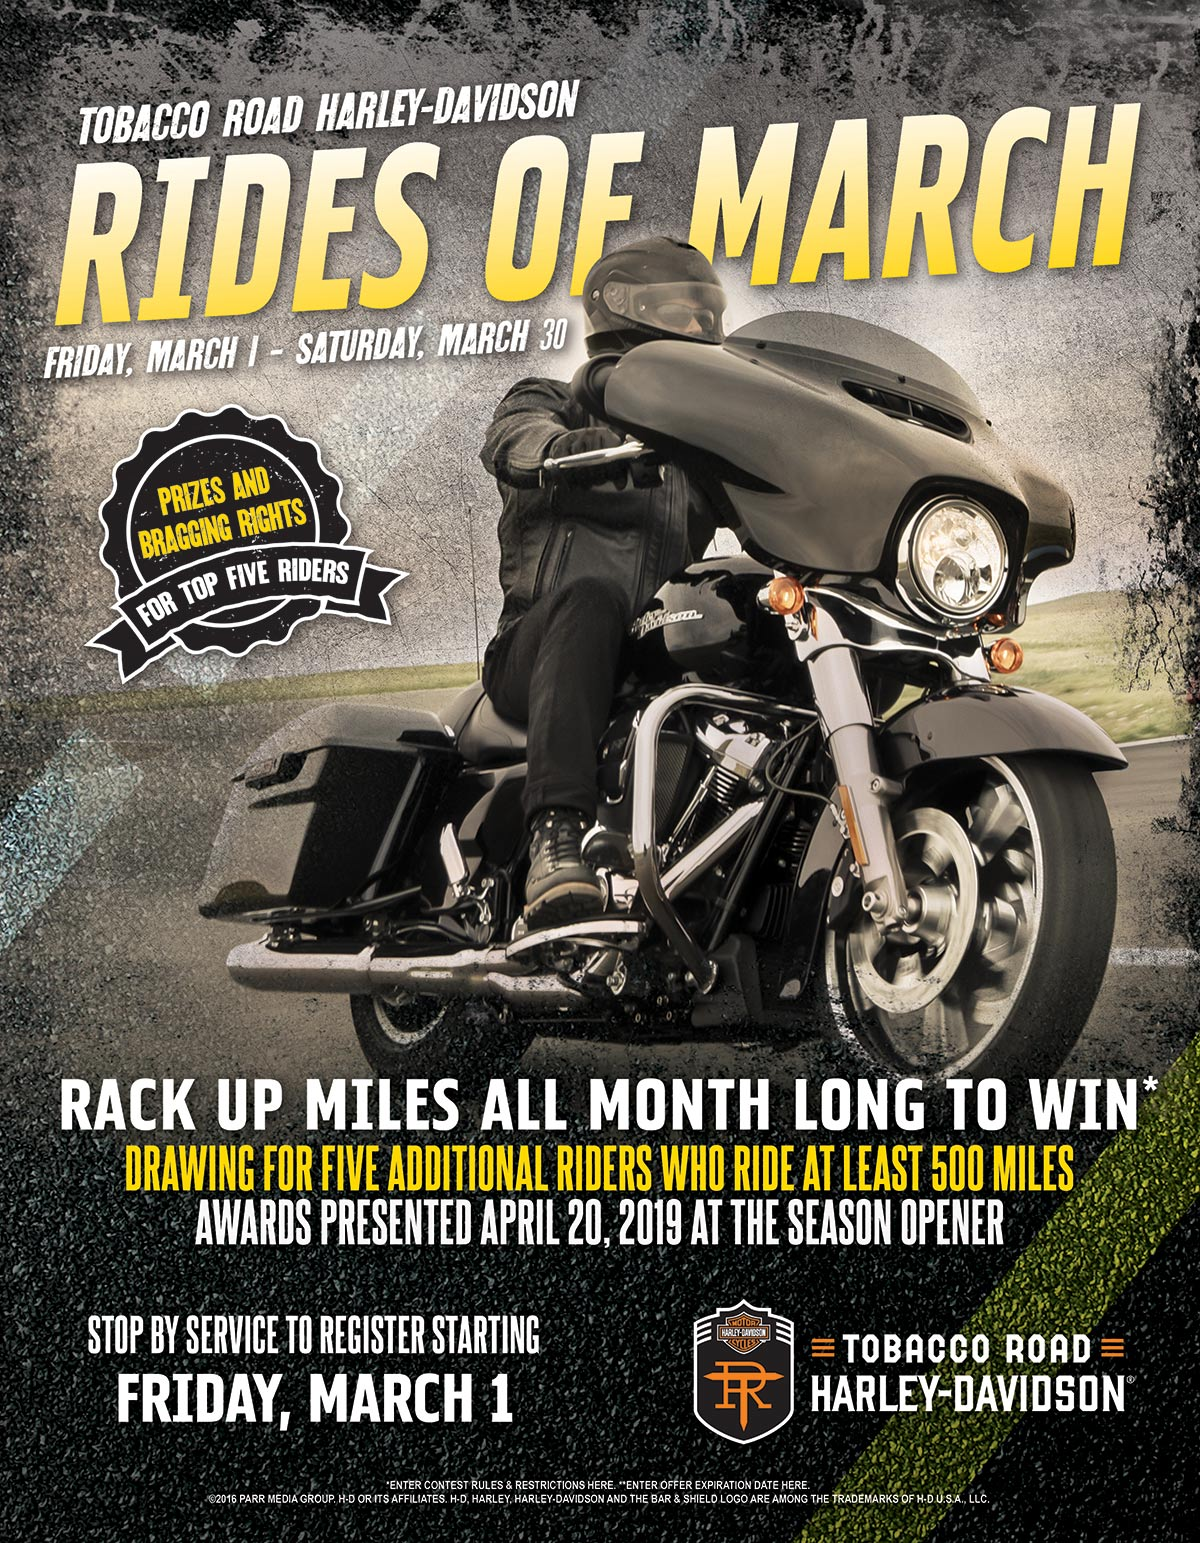 Rides of March